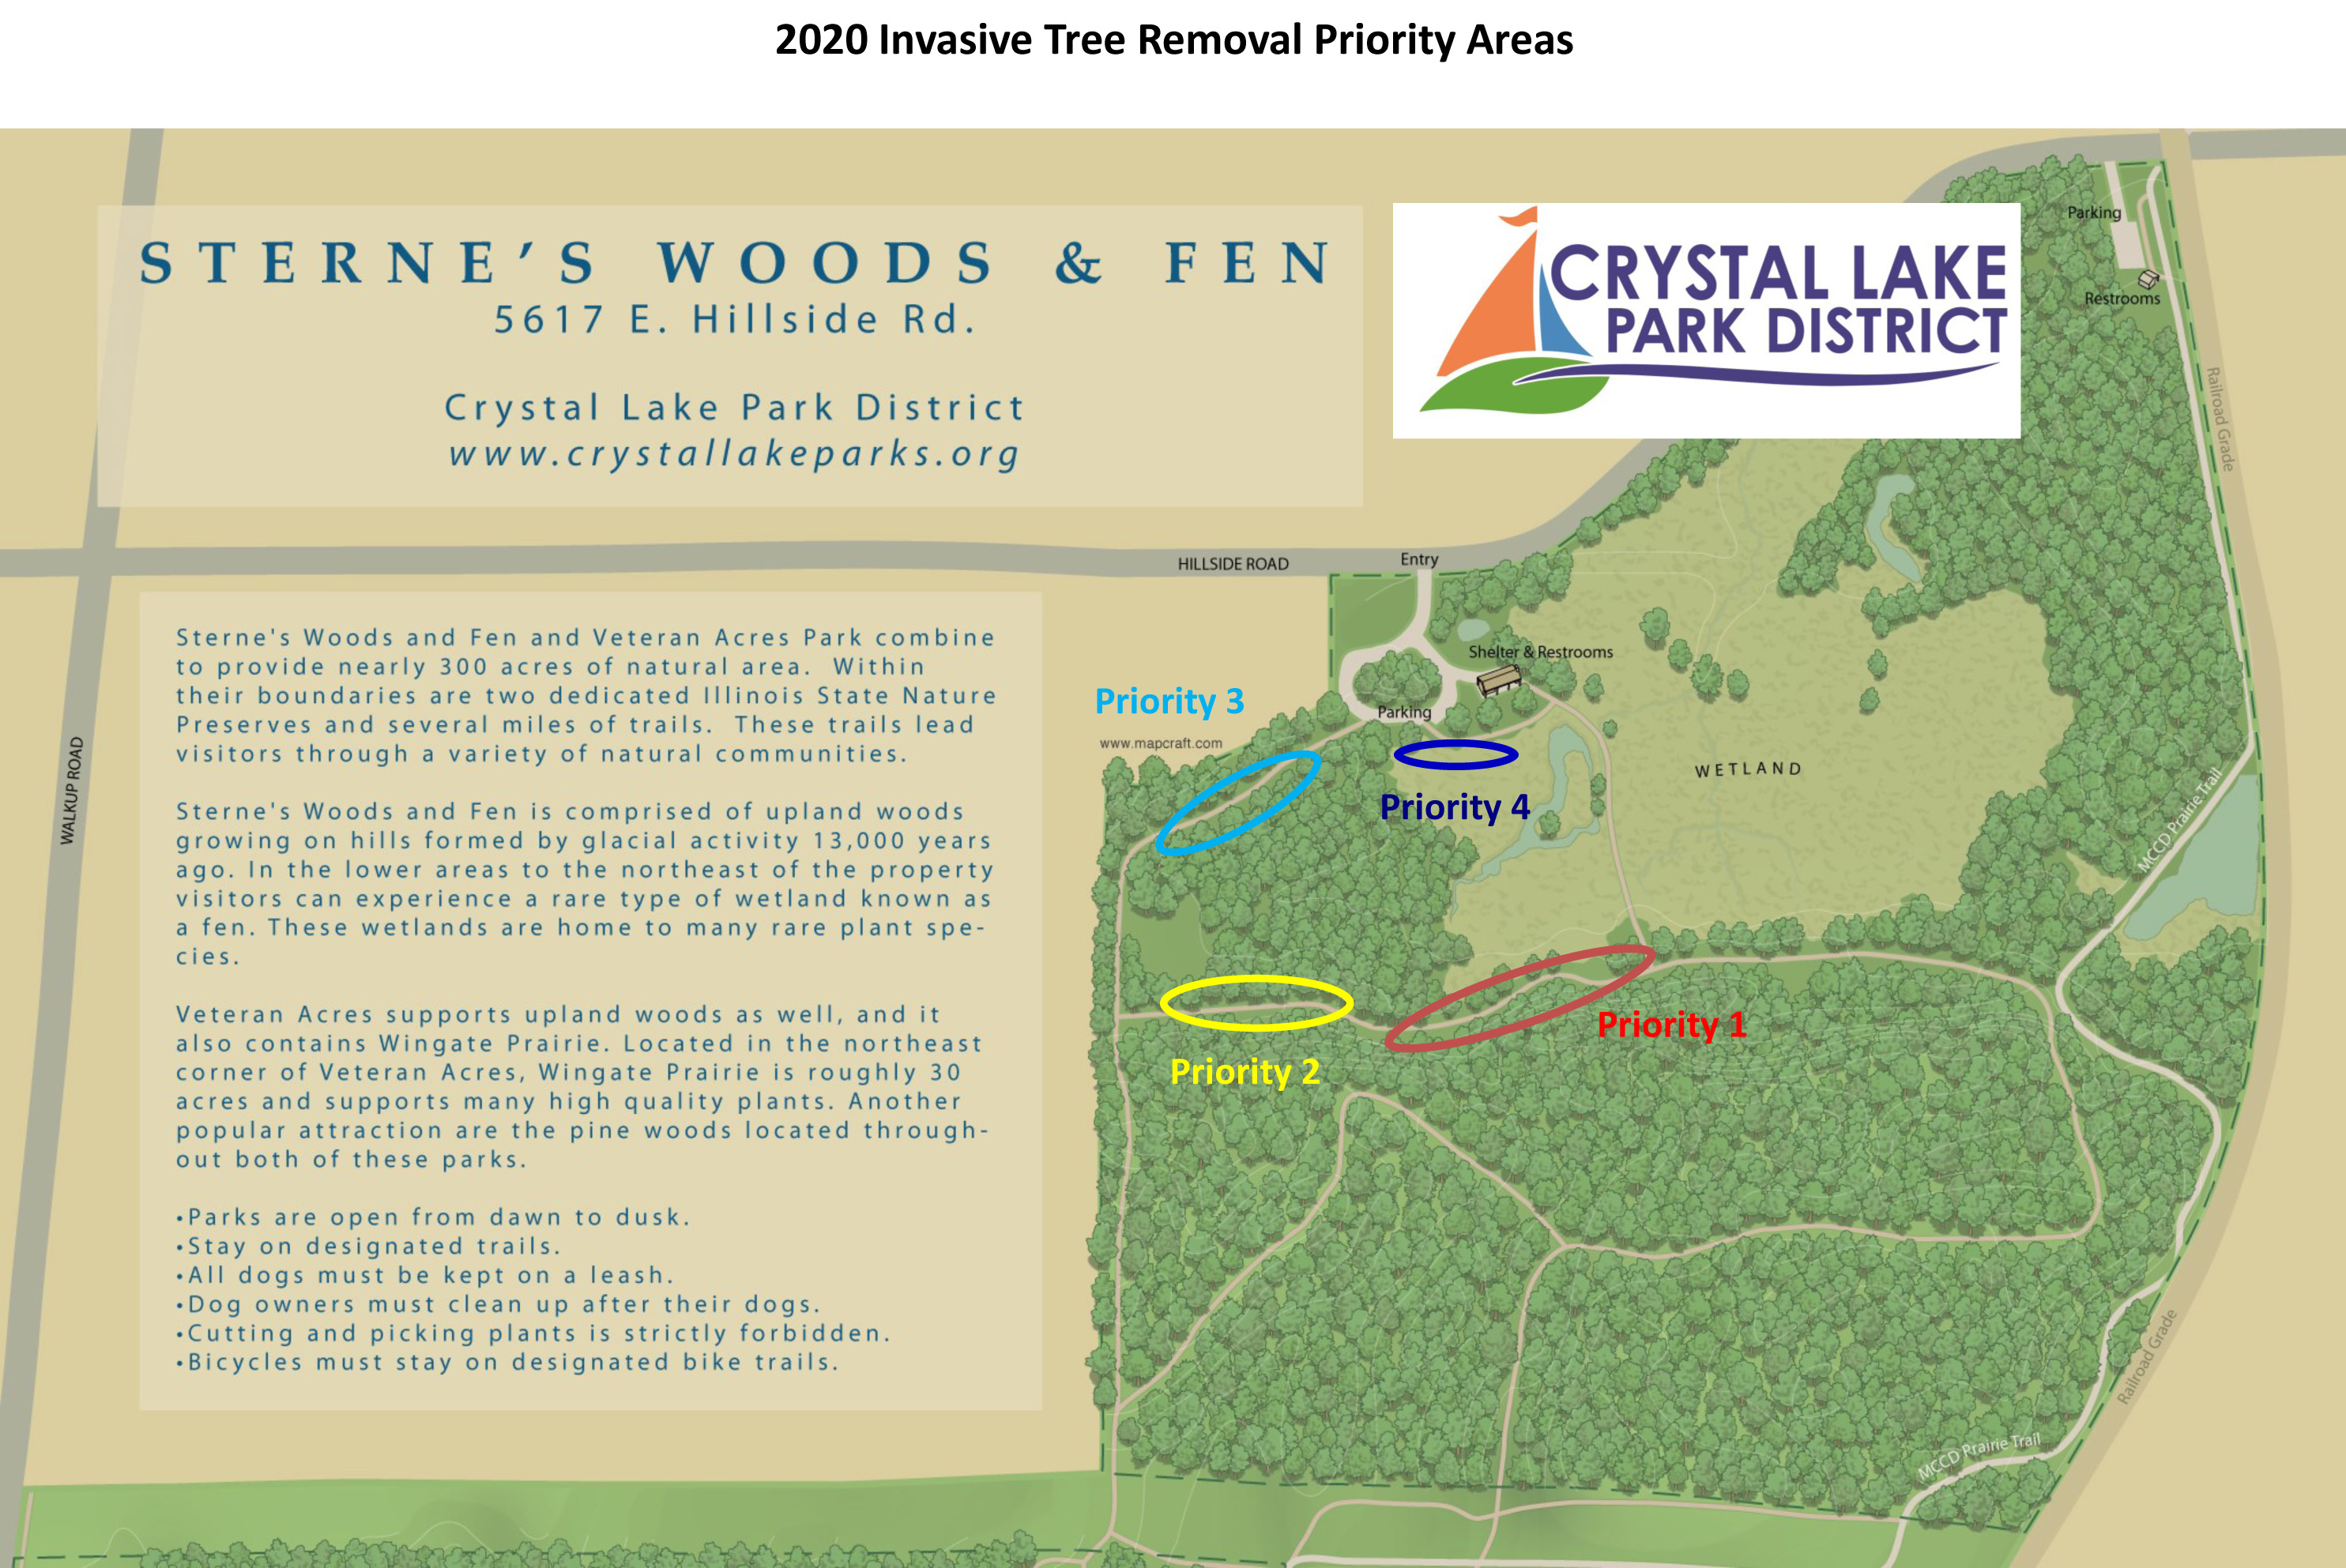 map of sternes woods and fen detailing invasive tree removal priority areas